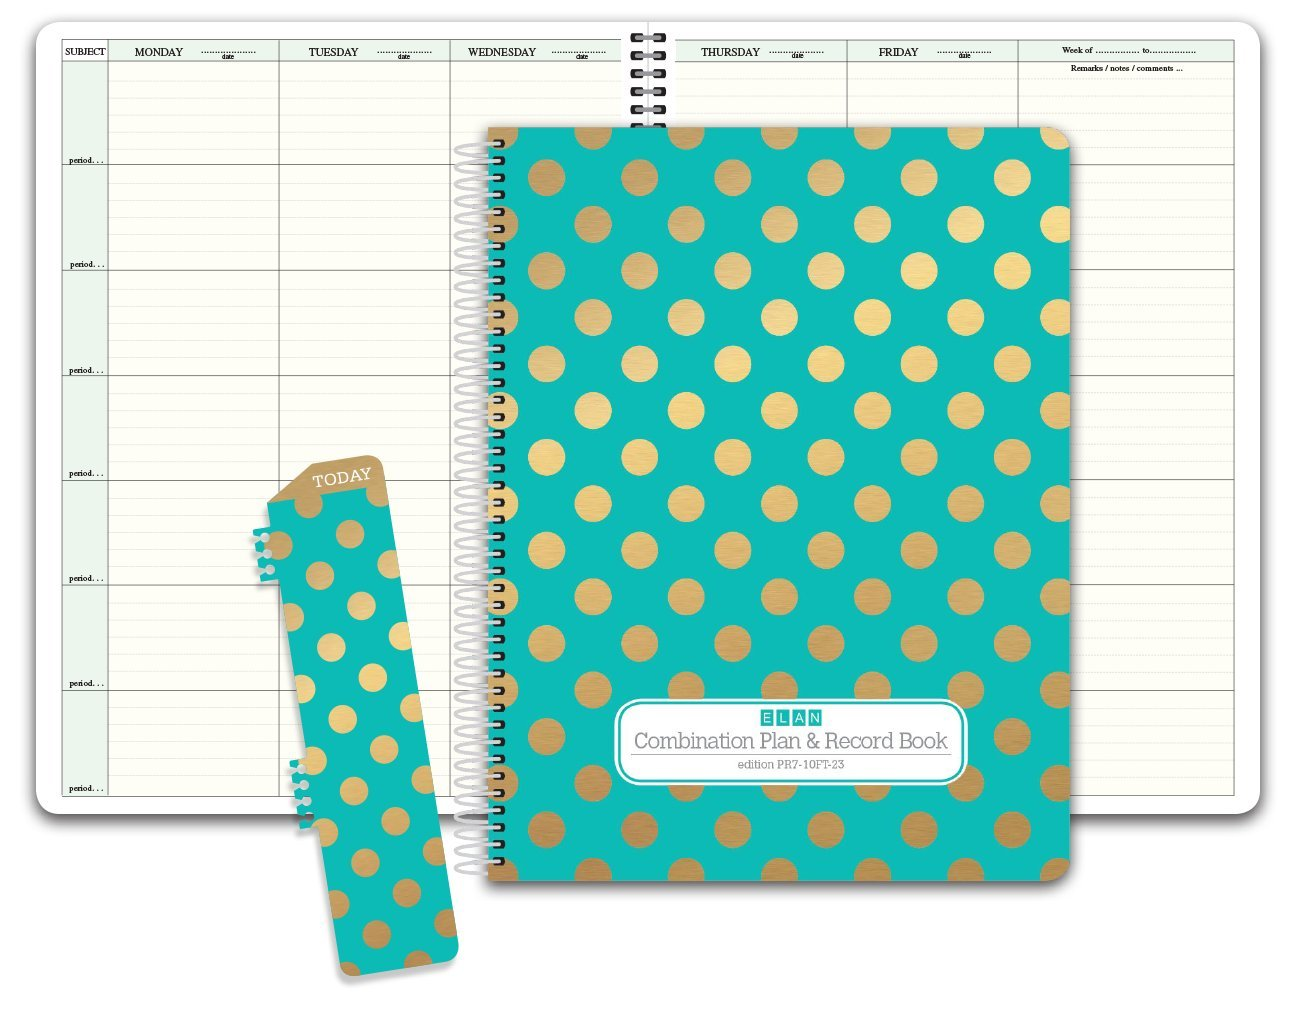 HARDCOVER Combination Plan and Record Book: One efficient 8-1/2'' x 11'' Book for Lesson Plans and Grades Combines W101 and R1010 (PR7-10) (+) Bonus Clip-in Bookmark (Gold Dots Turquoise)